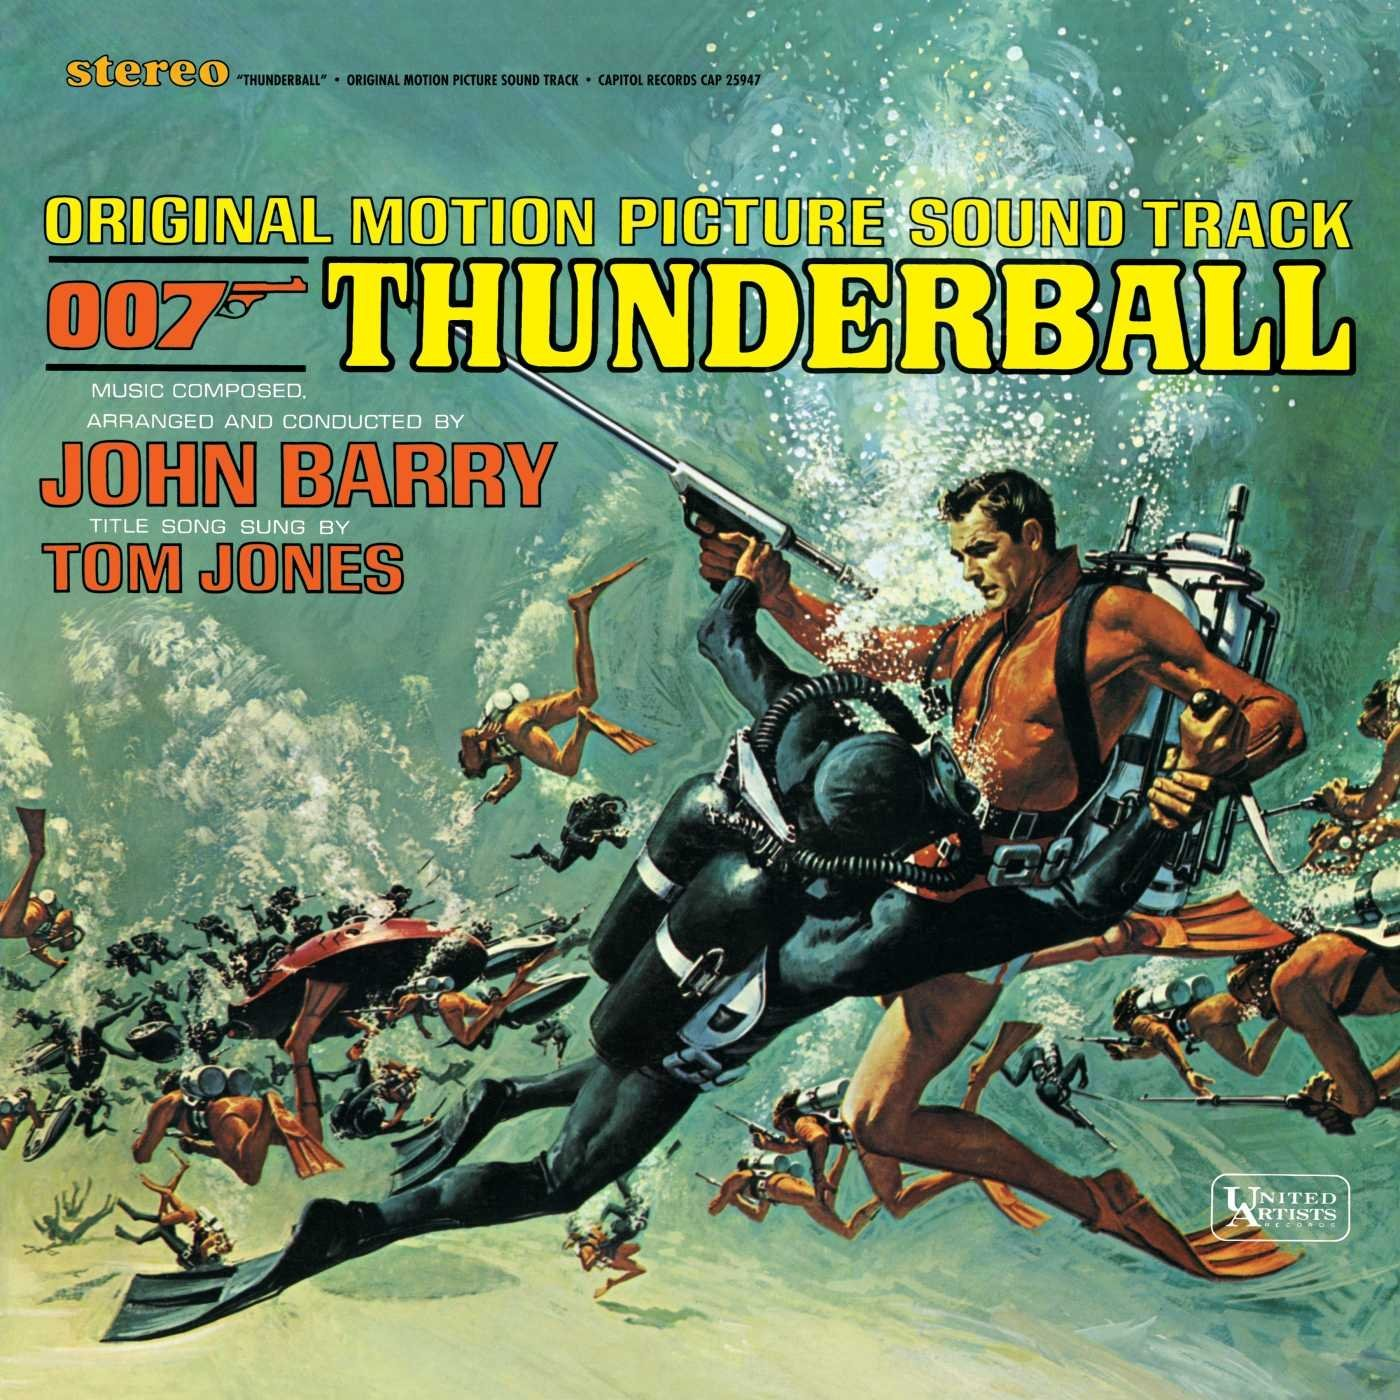 007 James Bond - Thunderball (1965) (vinile)